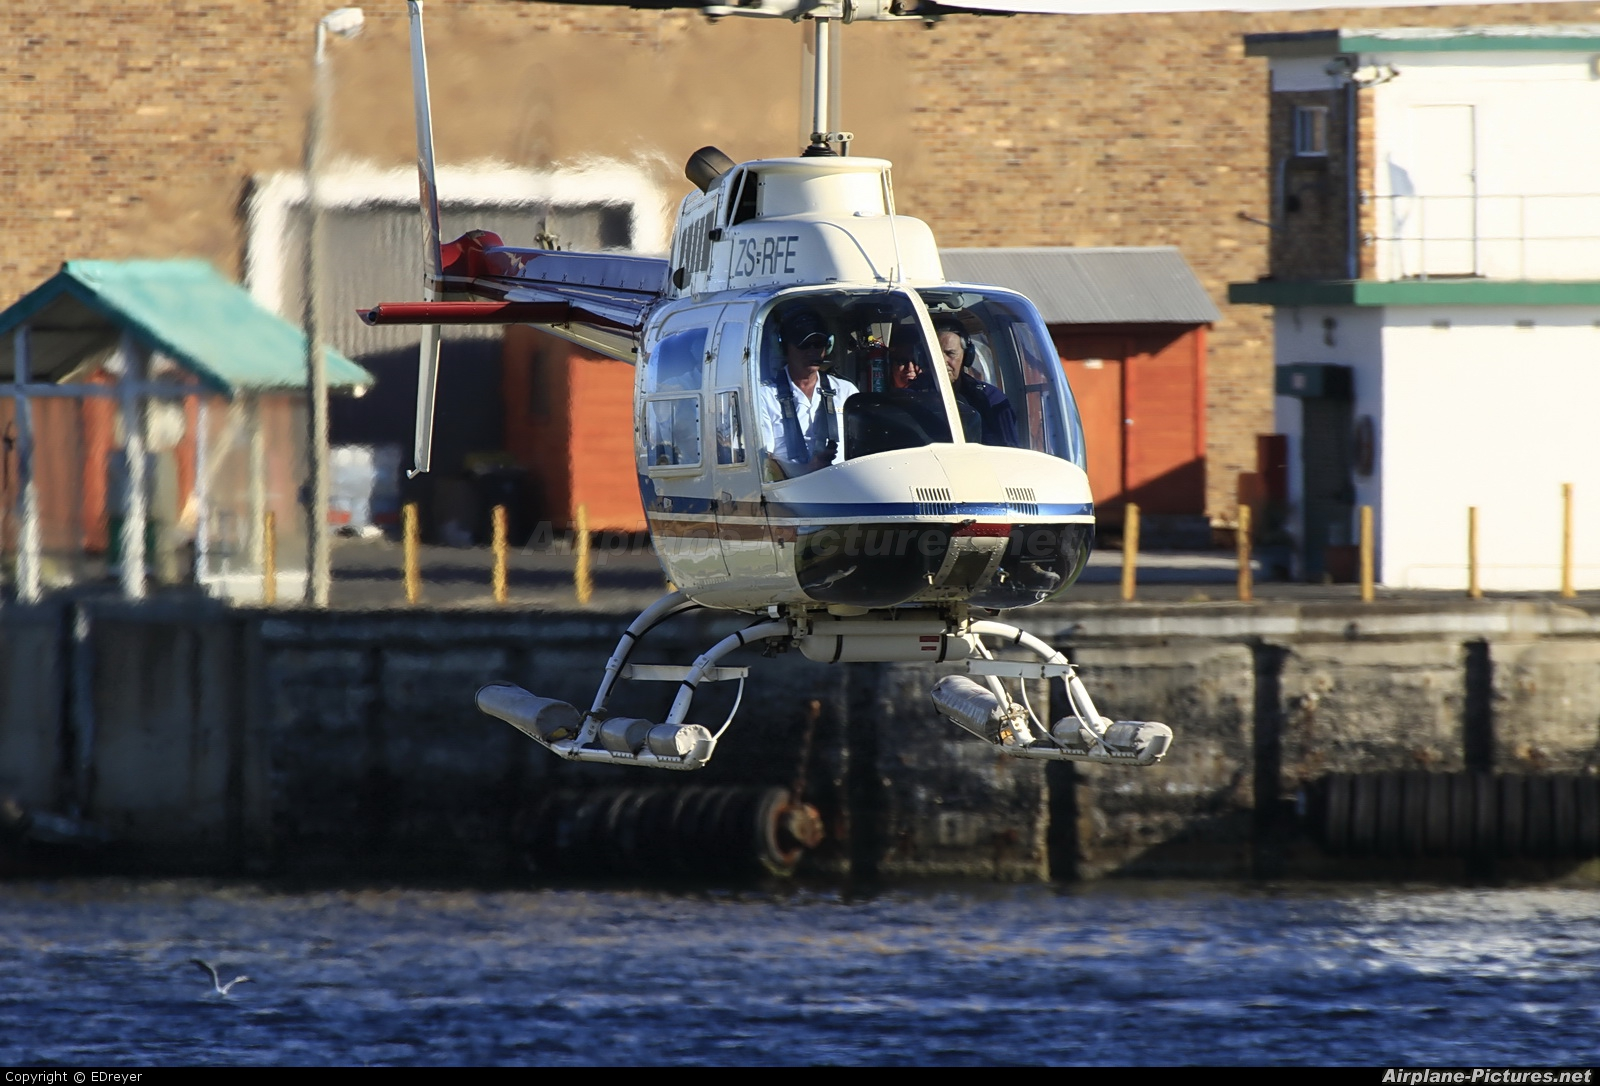 Sport Helicopters ZS-RFE aircraft at V&A Waterfront Heliport